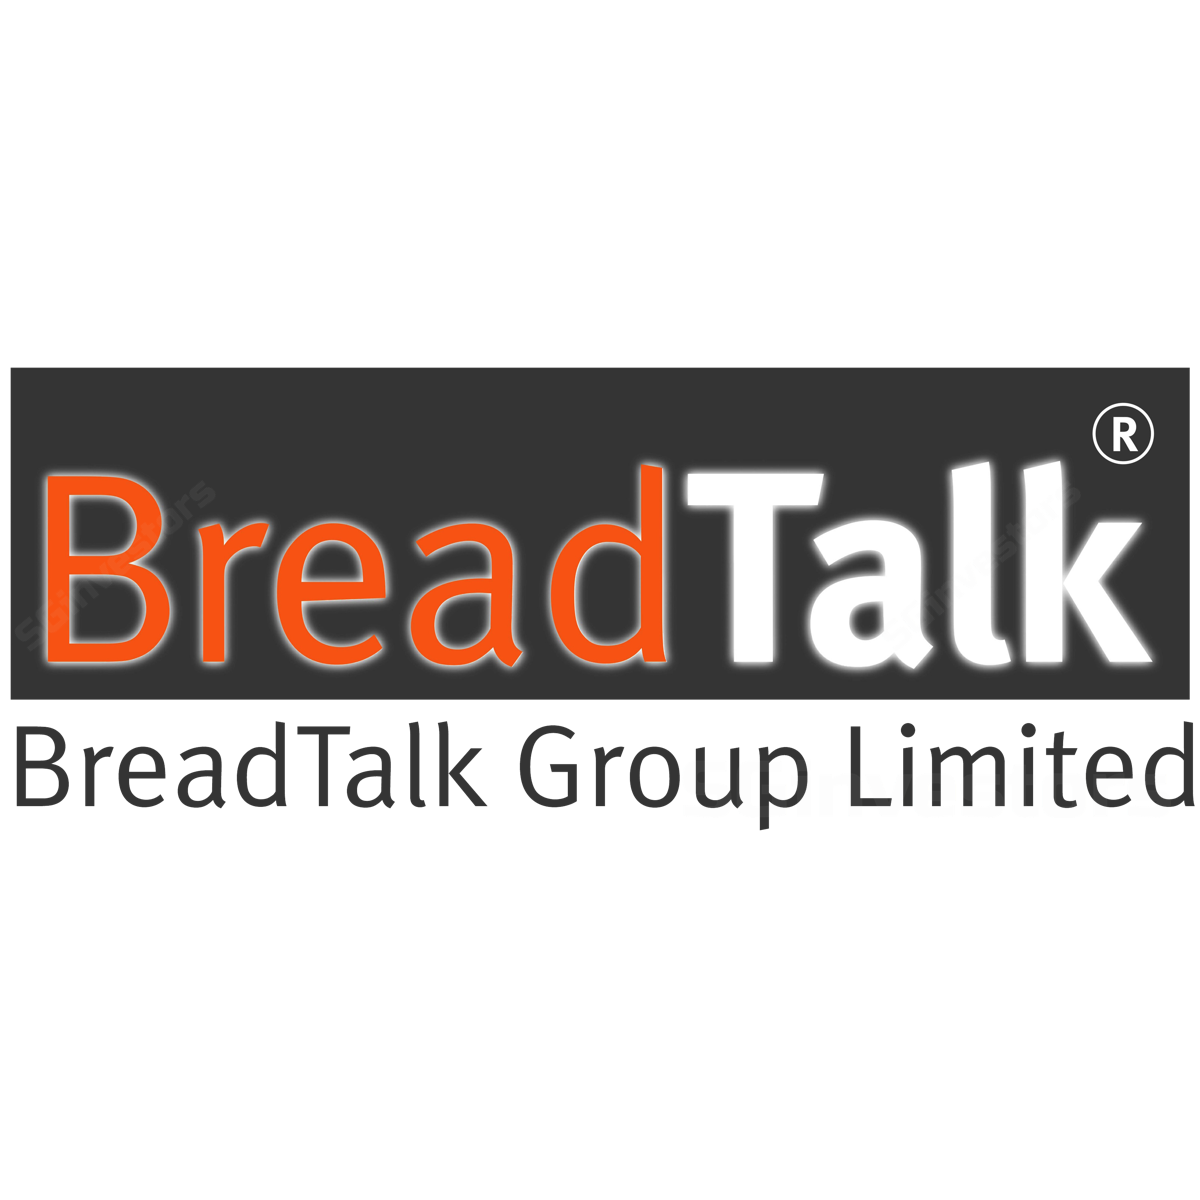 BreadTalk Group - RHB Invest 2017-11-06: Back To Expansion Phase